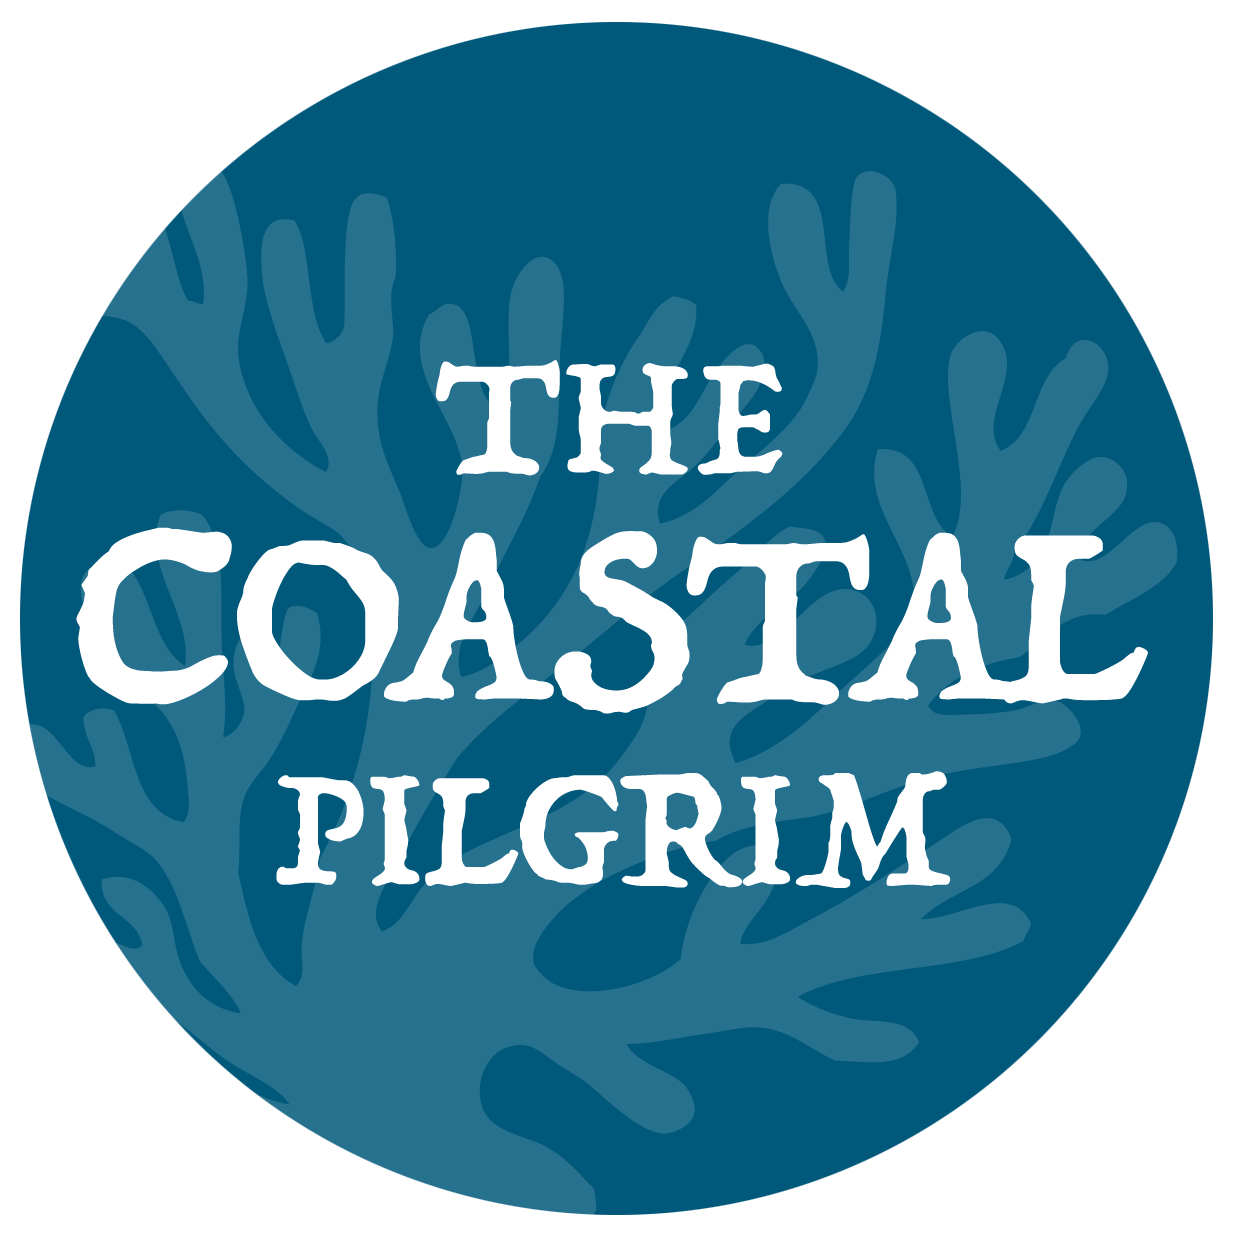 The Coastal Pilgrim